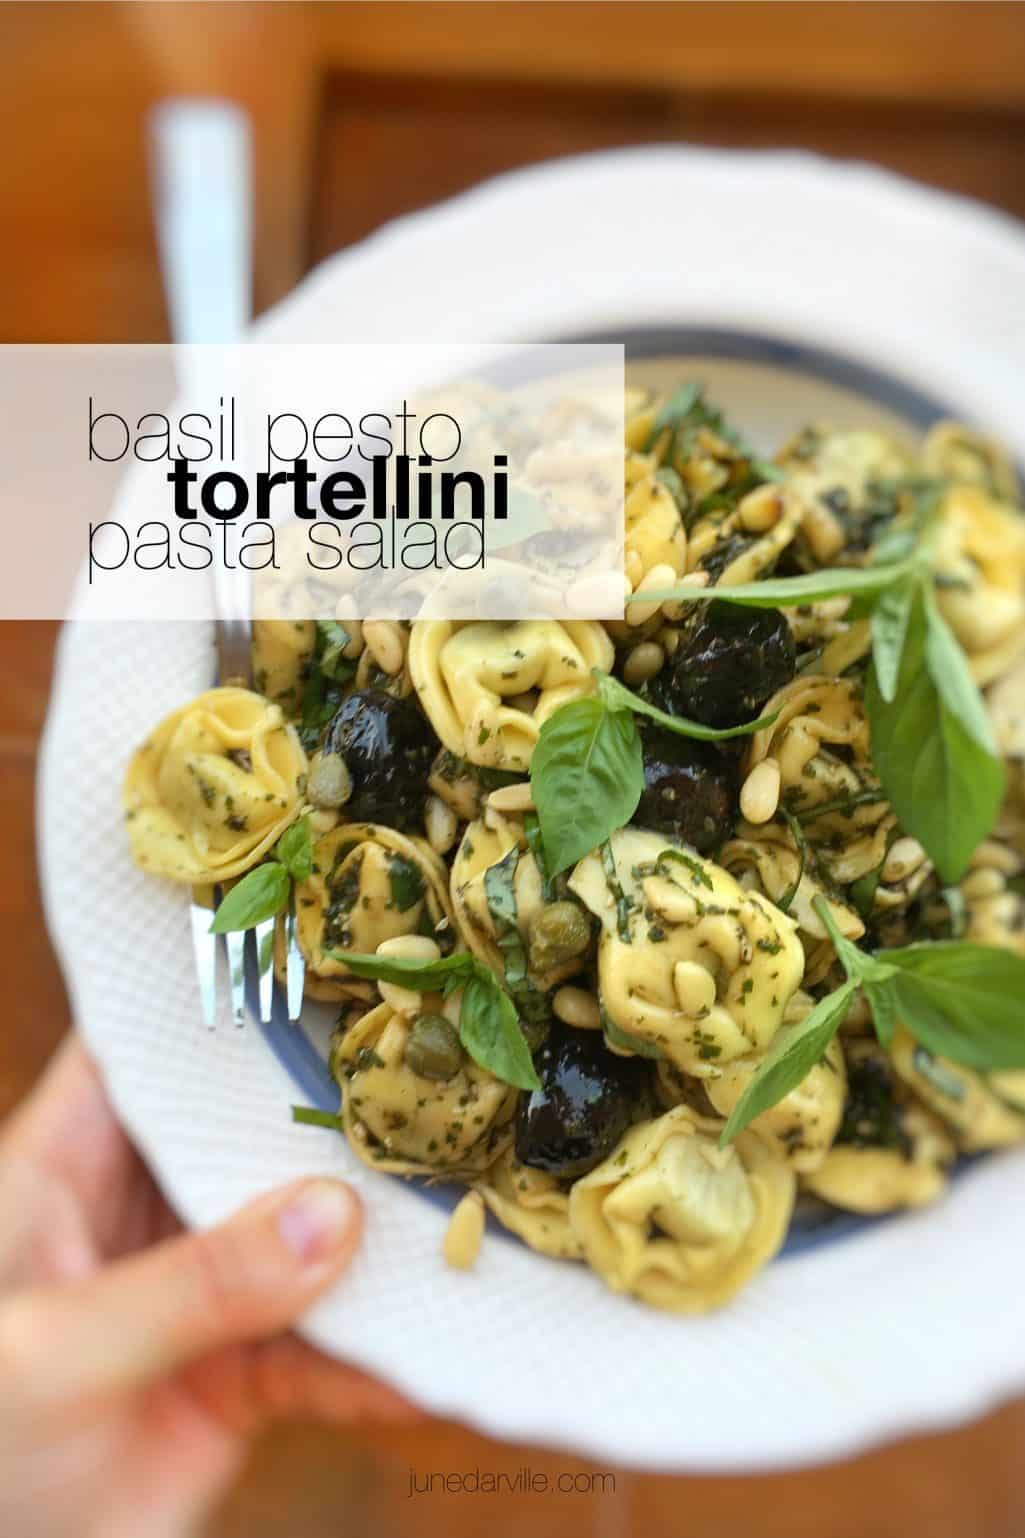 Serve this fresh basil pesto tortellini pasta salad warm or cold: as a hot pasta dinner… or tasty cold lunchbox salad to take with you!